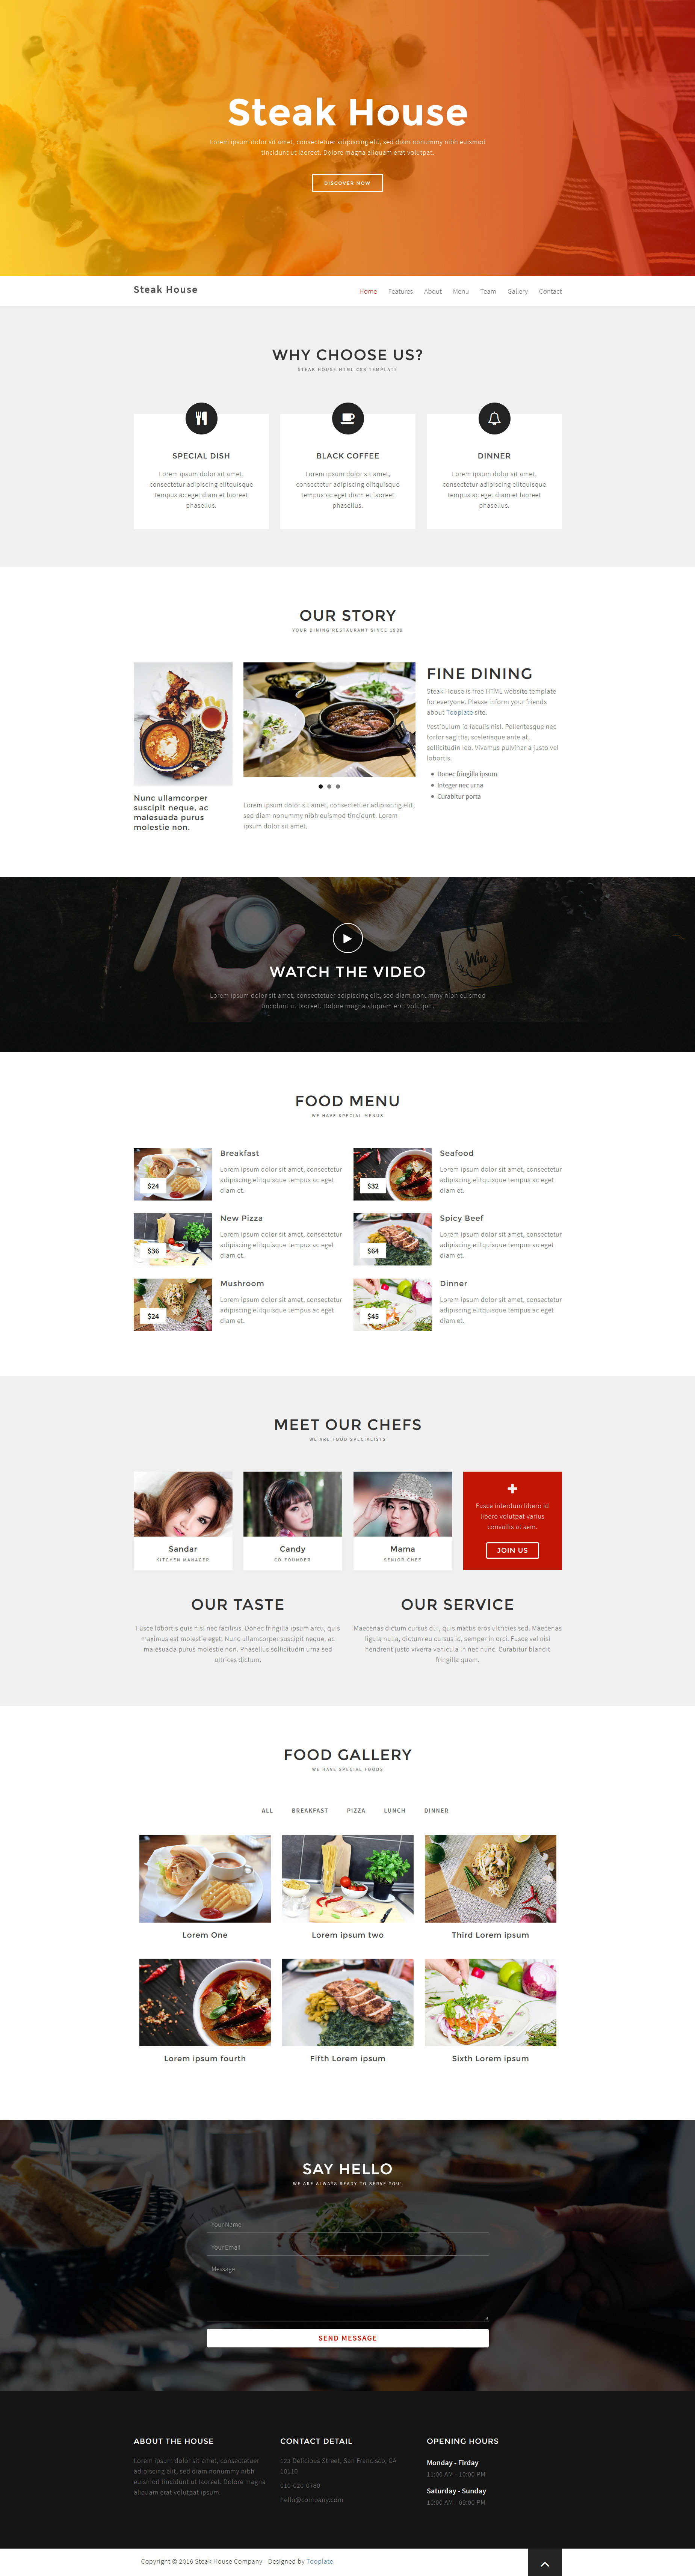 steak house free responsive html5 bootstrap one page template